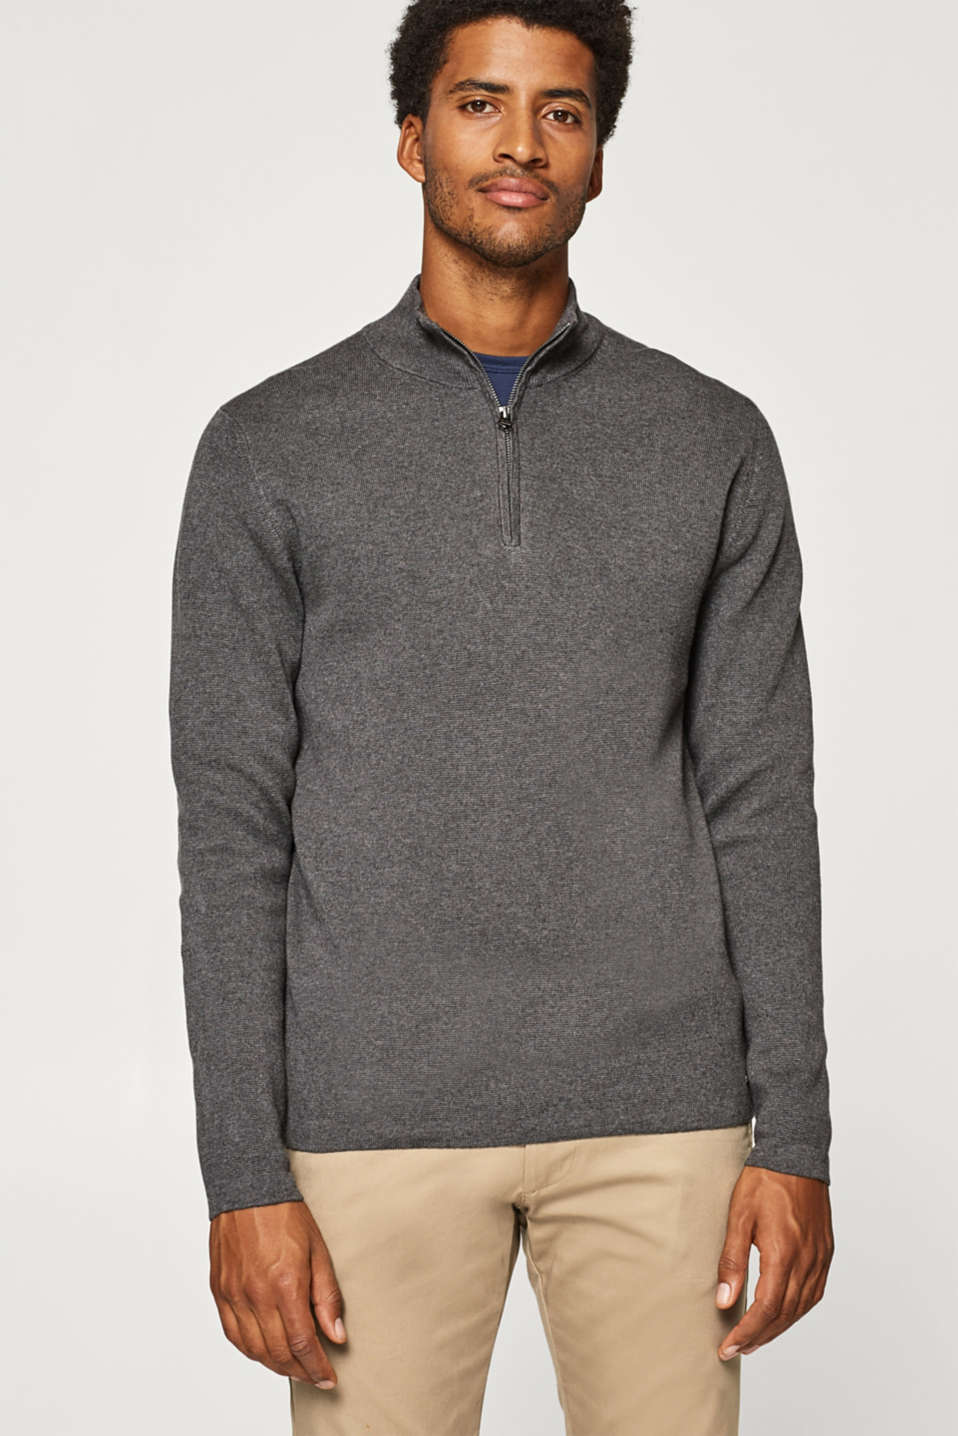 Esprit - Jumper with a zip collar, 100% cotton